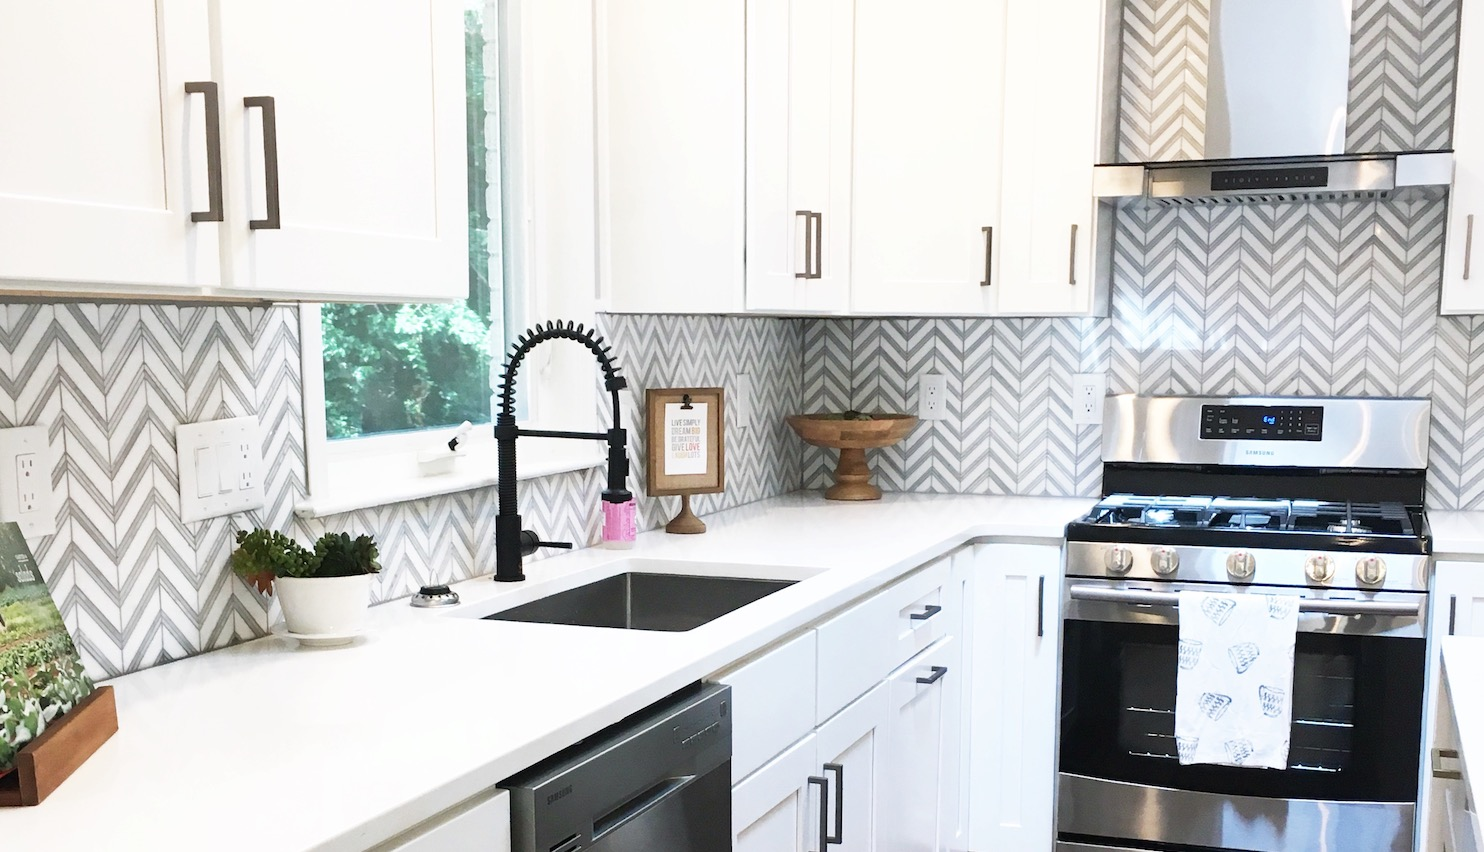 10 Kitchen Ideas For Your Next Home Renovation Project - The ...